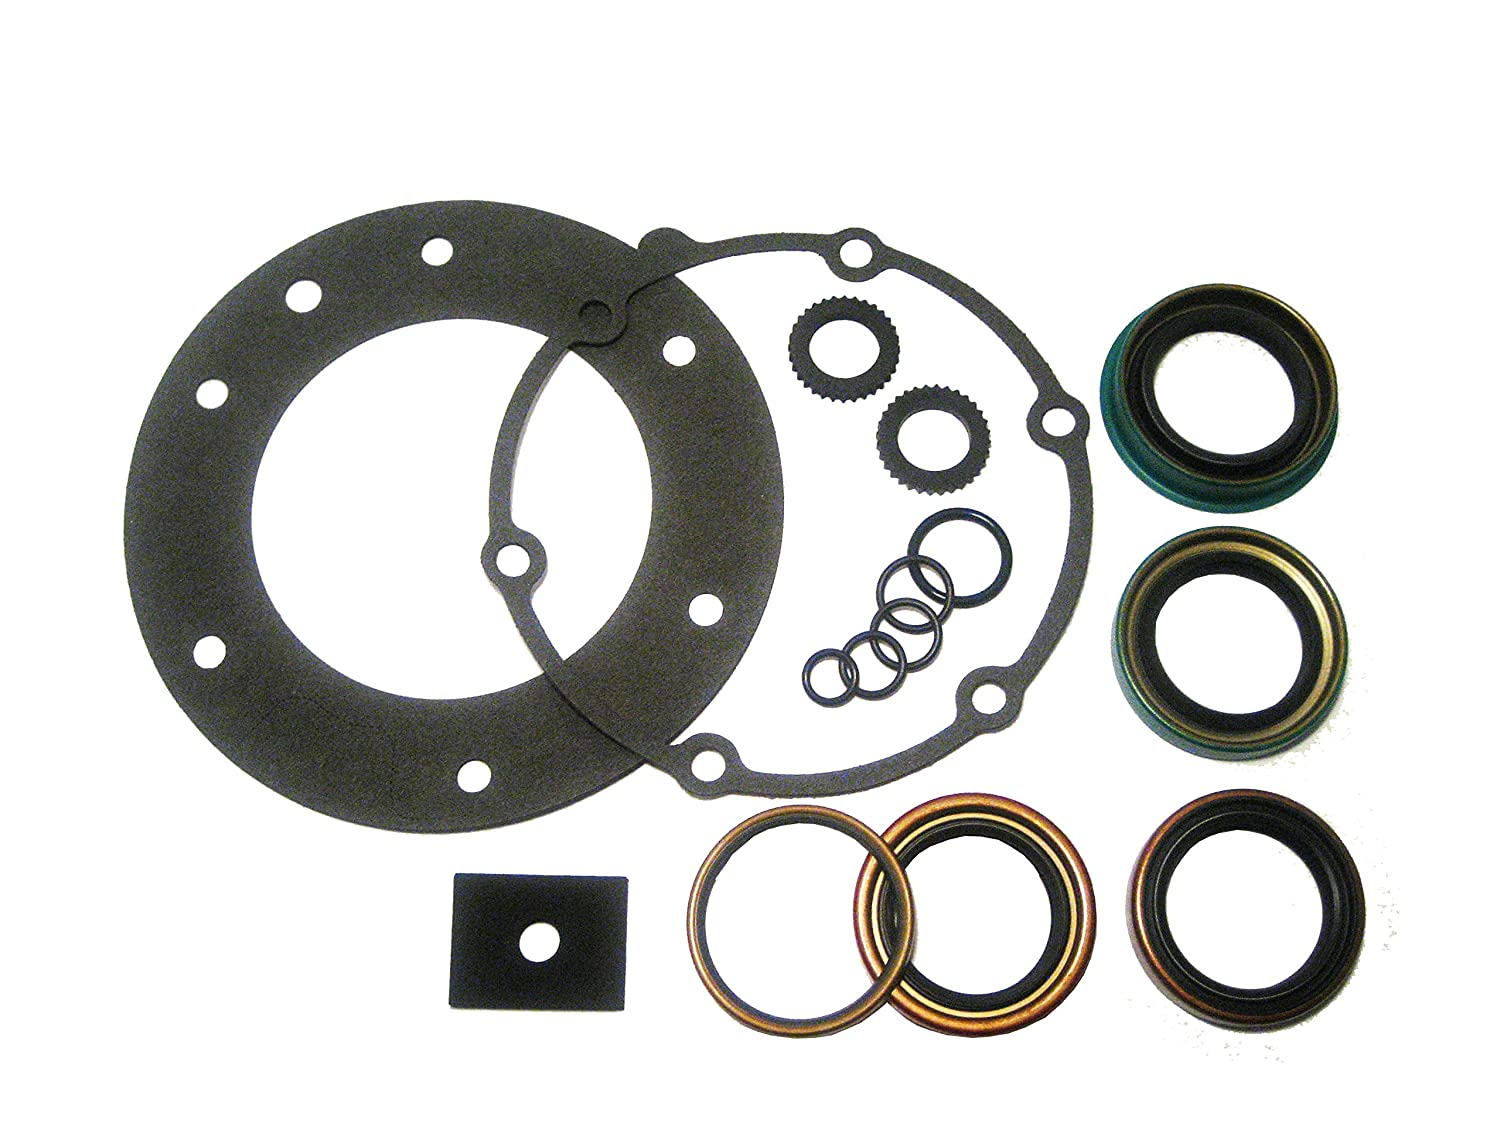 Vital Parts Transfer Case Gasket /& Seal Kit Fits GM NP 208 241 229 228 4WD Re-Seal Overhaul Kit